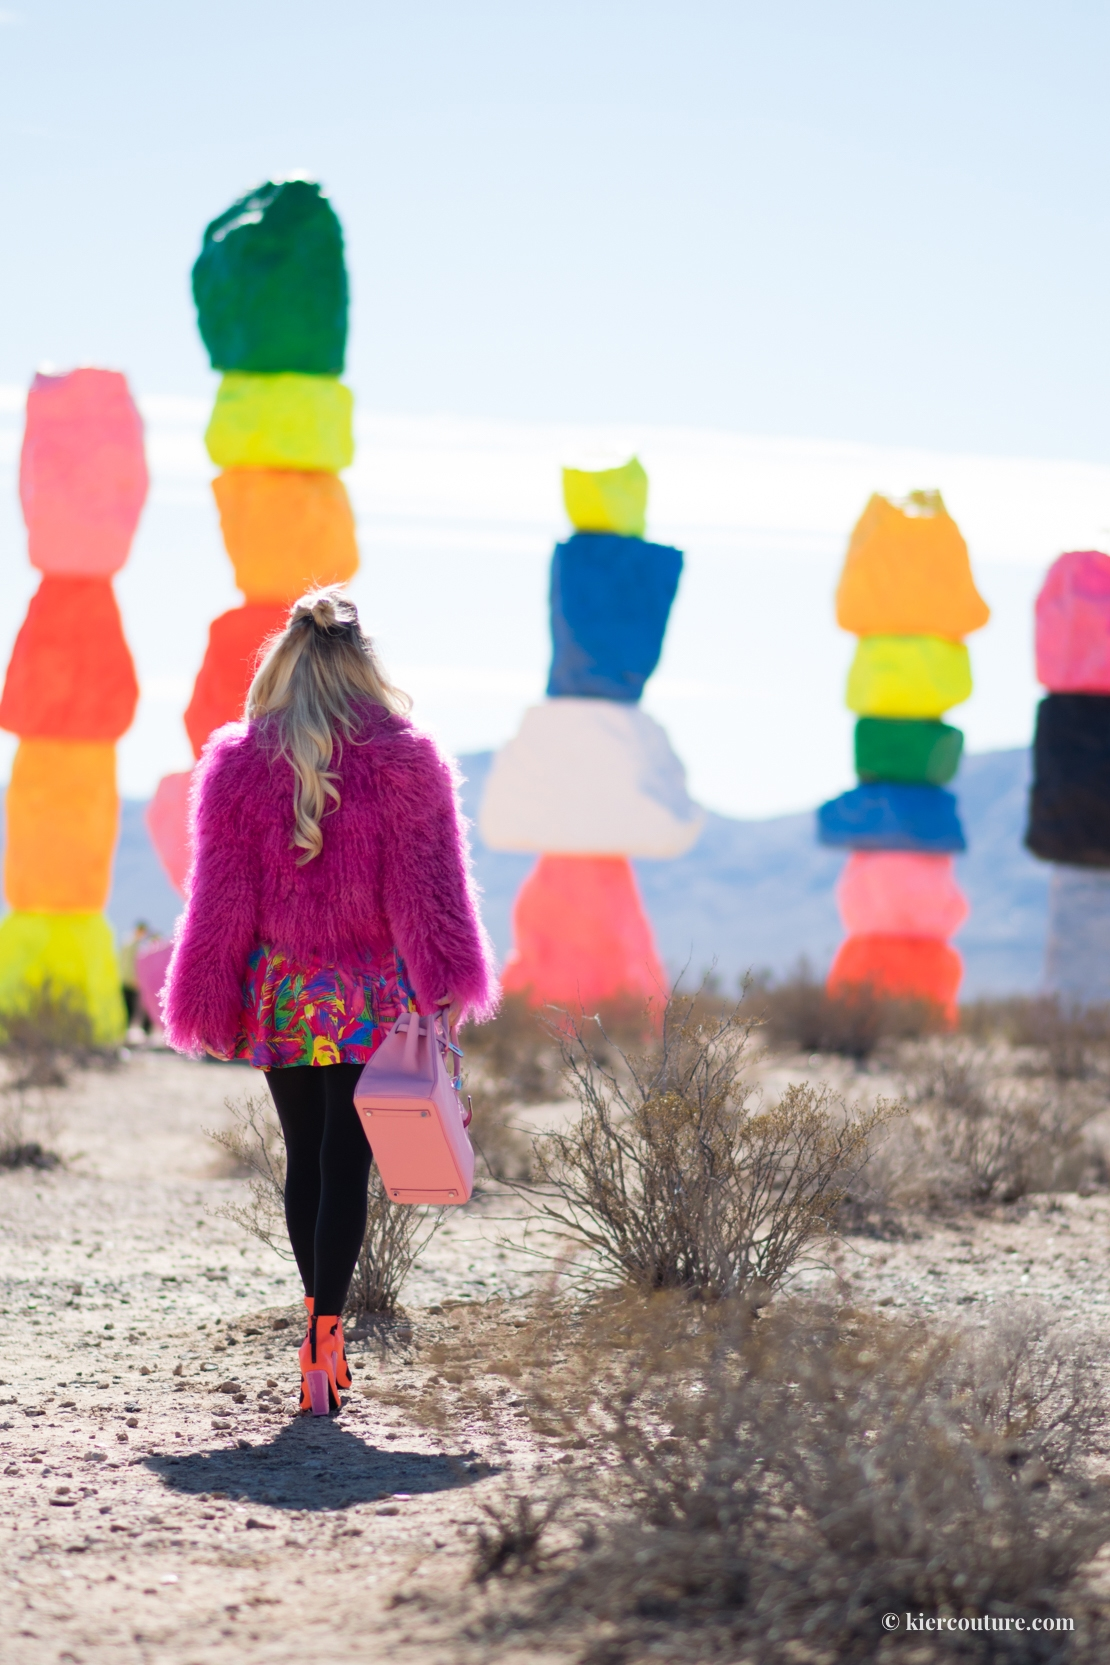 Painted rocks in Las Vegas: Kier Couture at Seven magic mountains / 7 magic mountains.